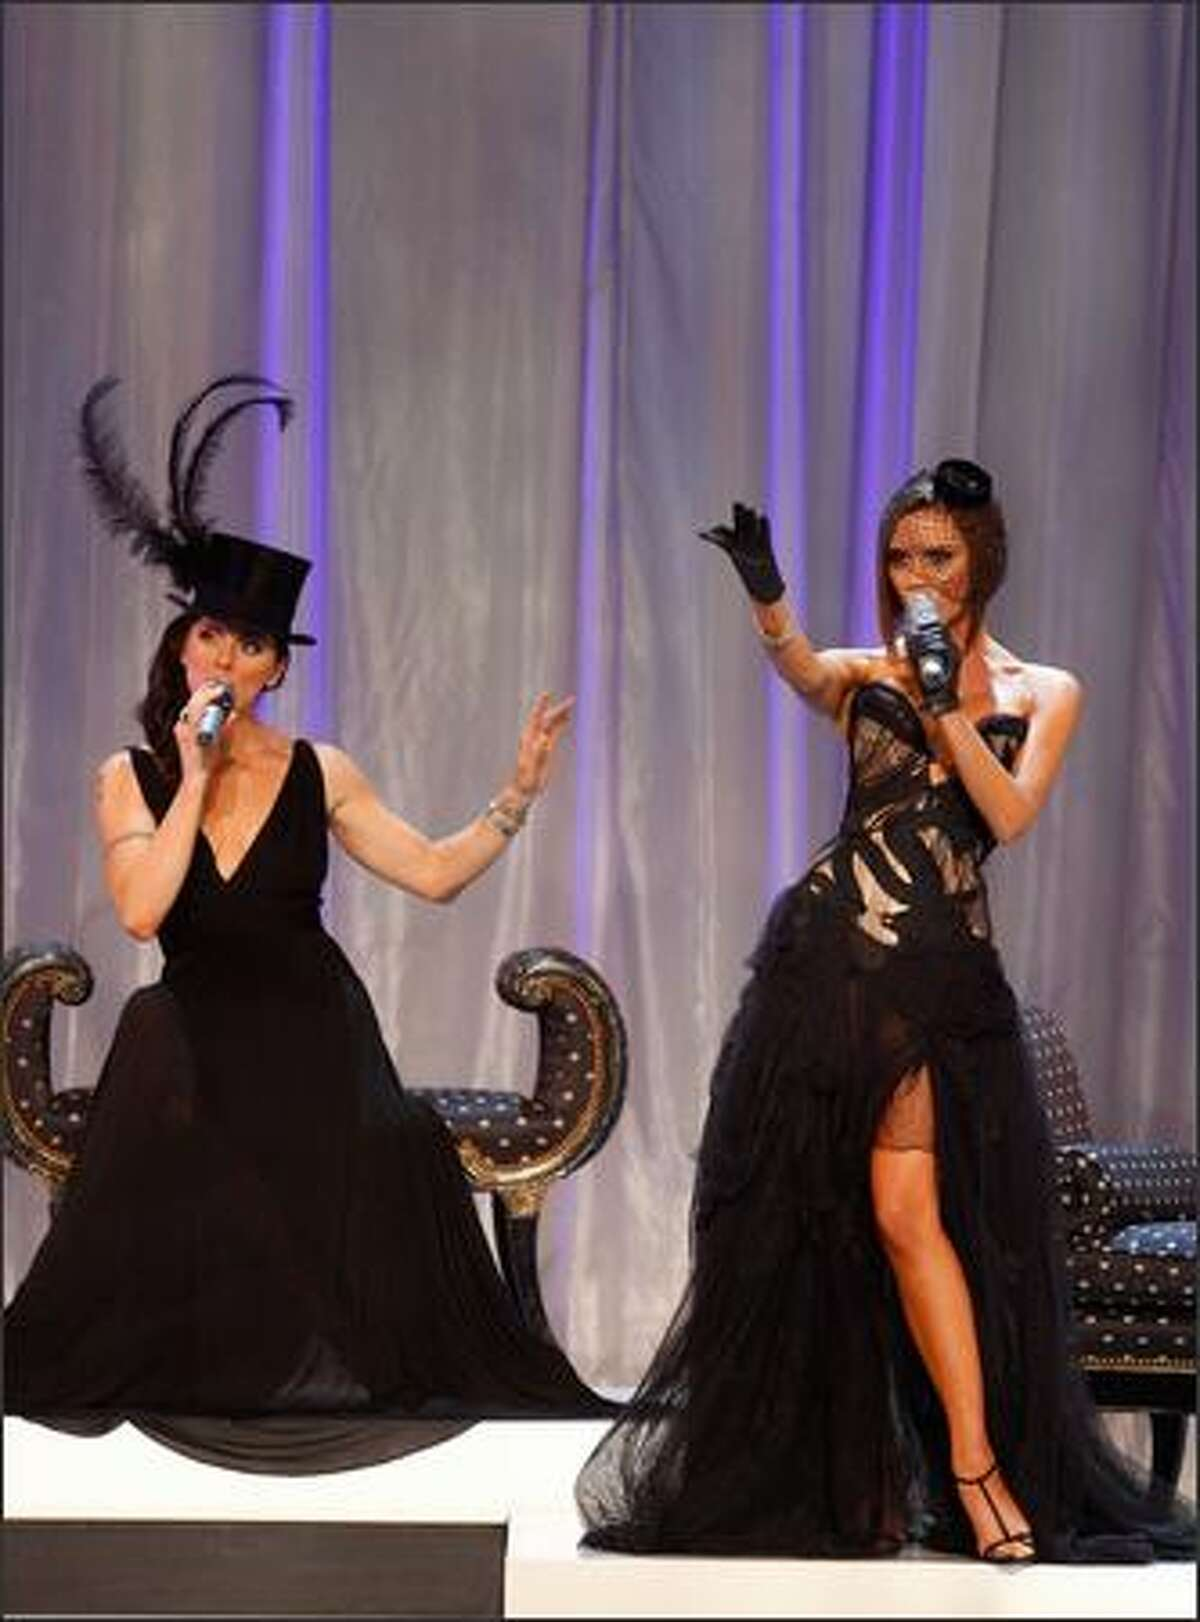 Singers Melanie Chisholm aka Sporty Spice (left) and Victoria Beckham aka Posh Spice perform with the Spice Girls.